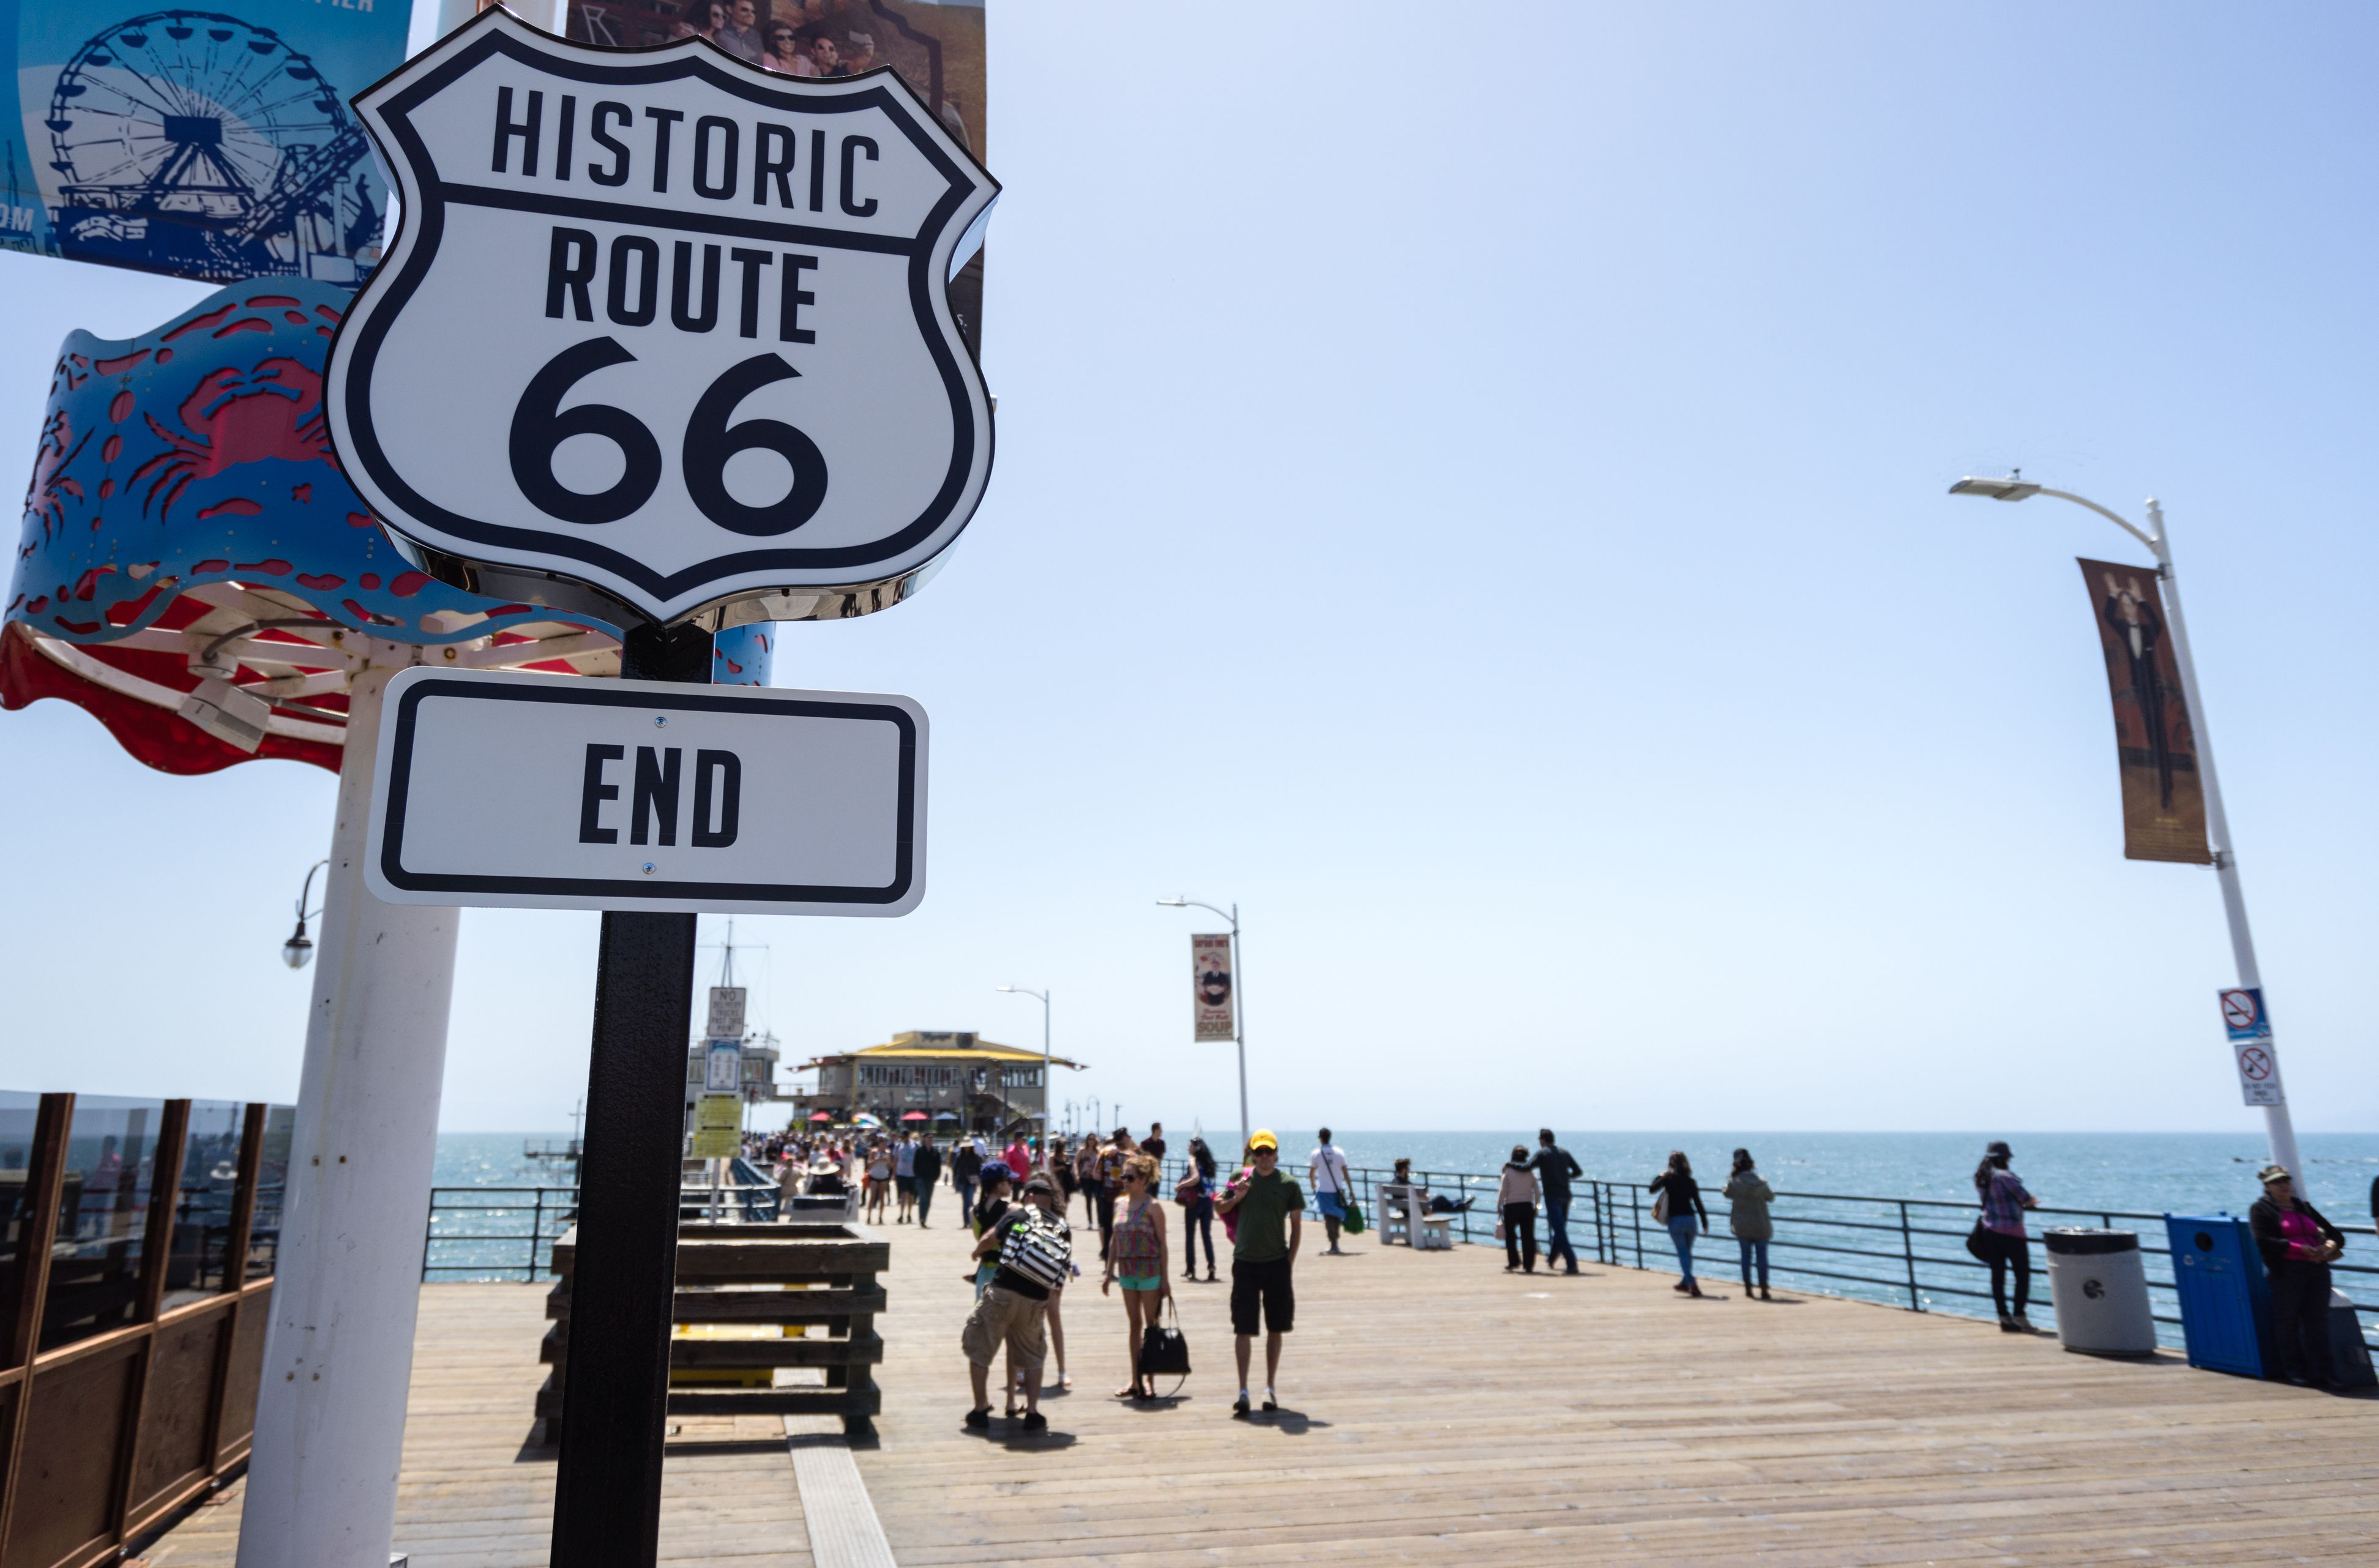 Route 66 in California: Driving Tour and Road Trip on